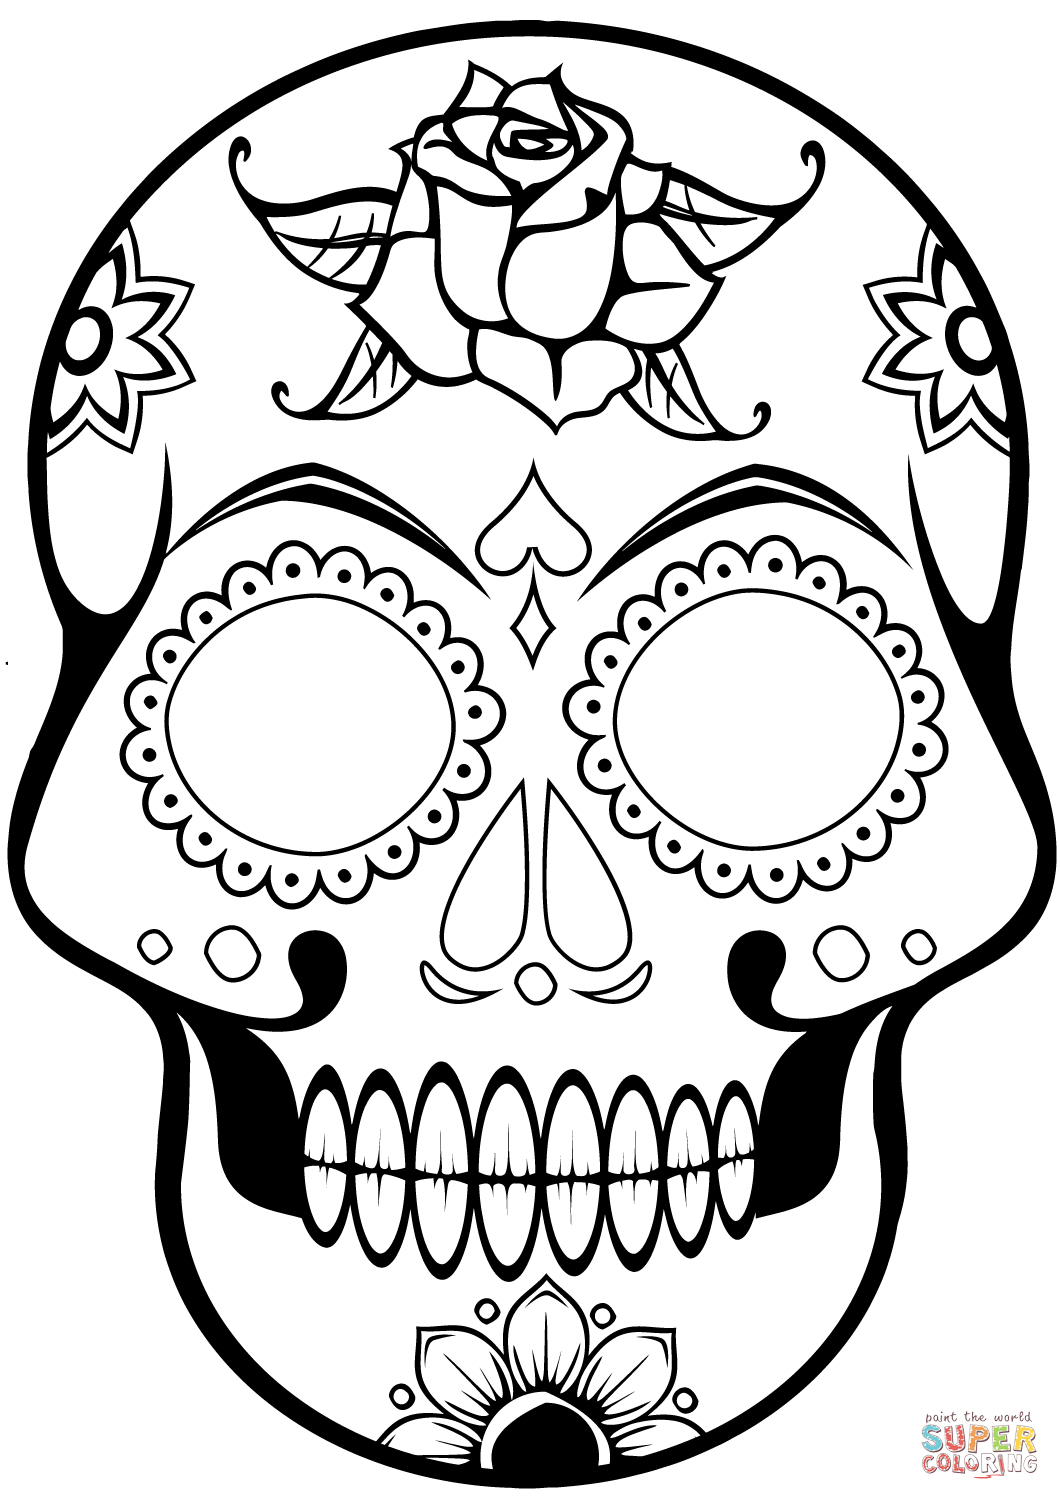 colorful sugar skull simple sugar skull drawing at paintingvalleycom explore skull sugar colorful